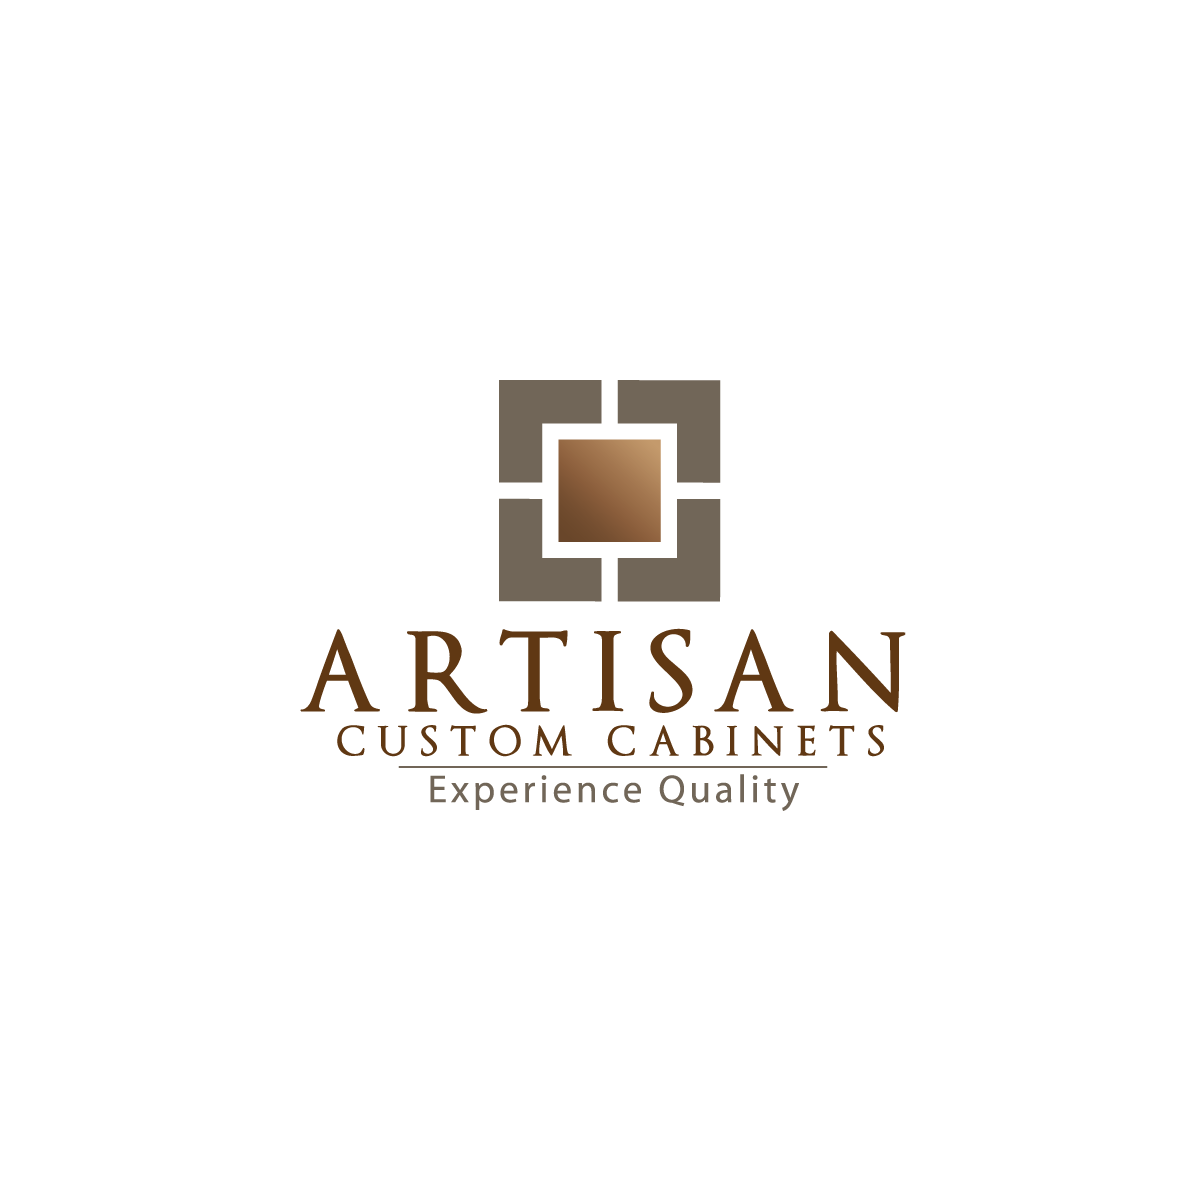 Artisan Cabinets Logo  Google Search  Kitchen  Pinterest  Logo Best Kitchen Design Logo Design Decoration